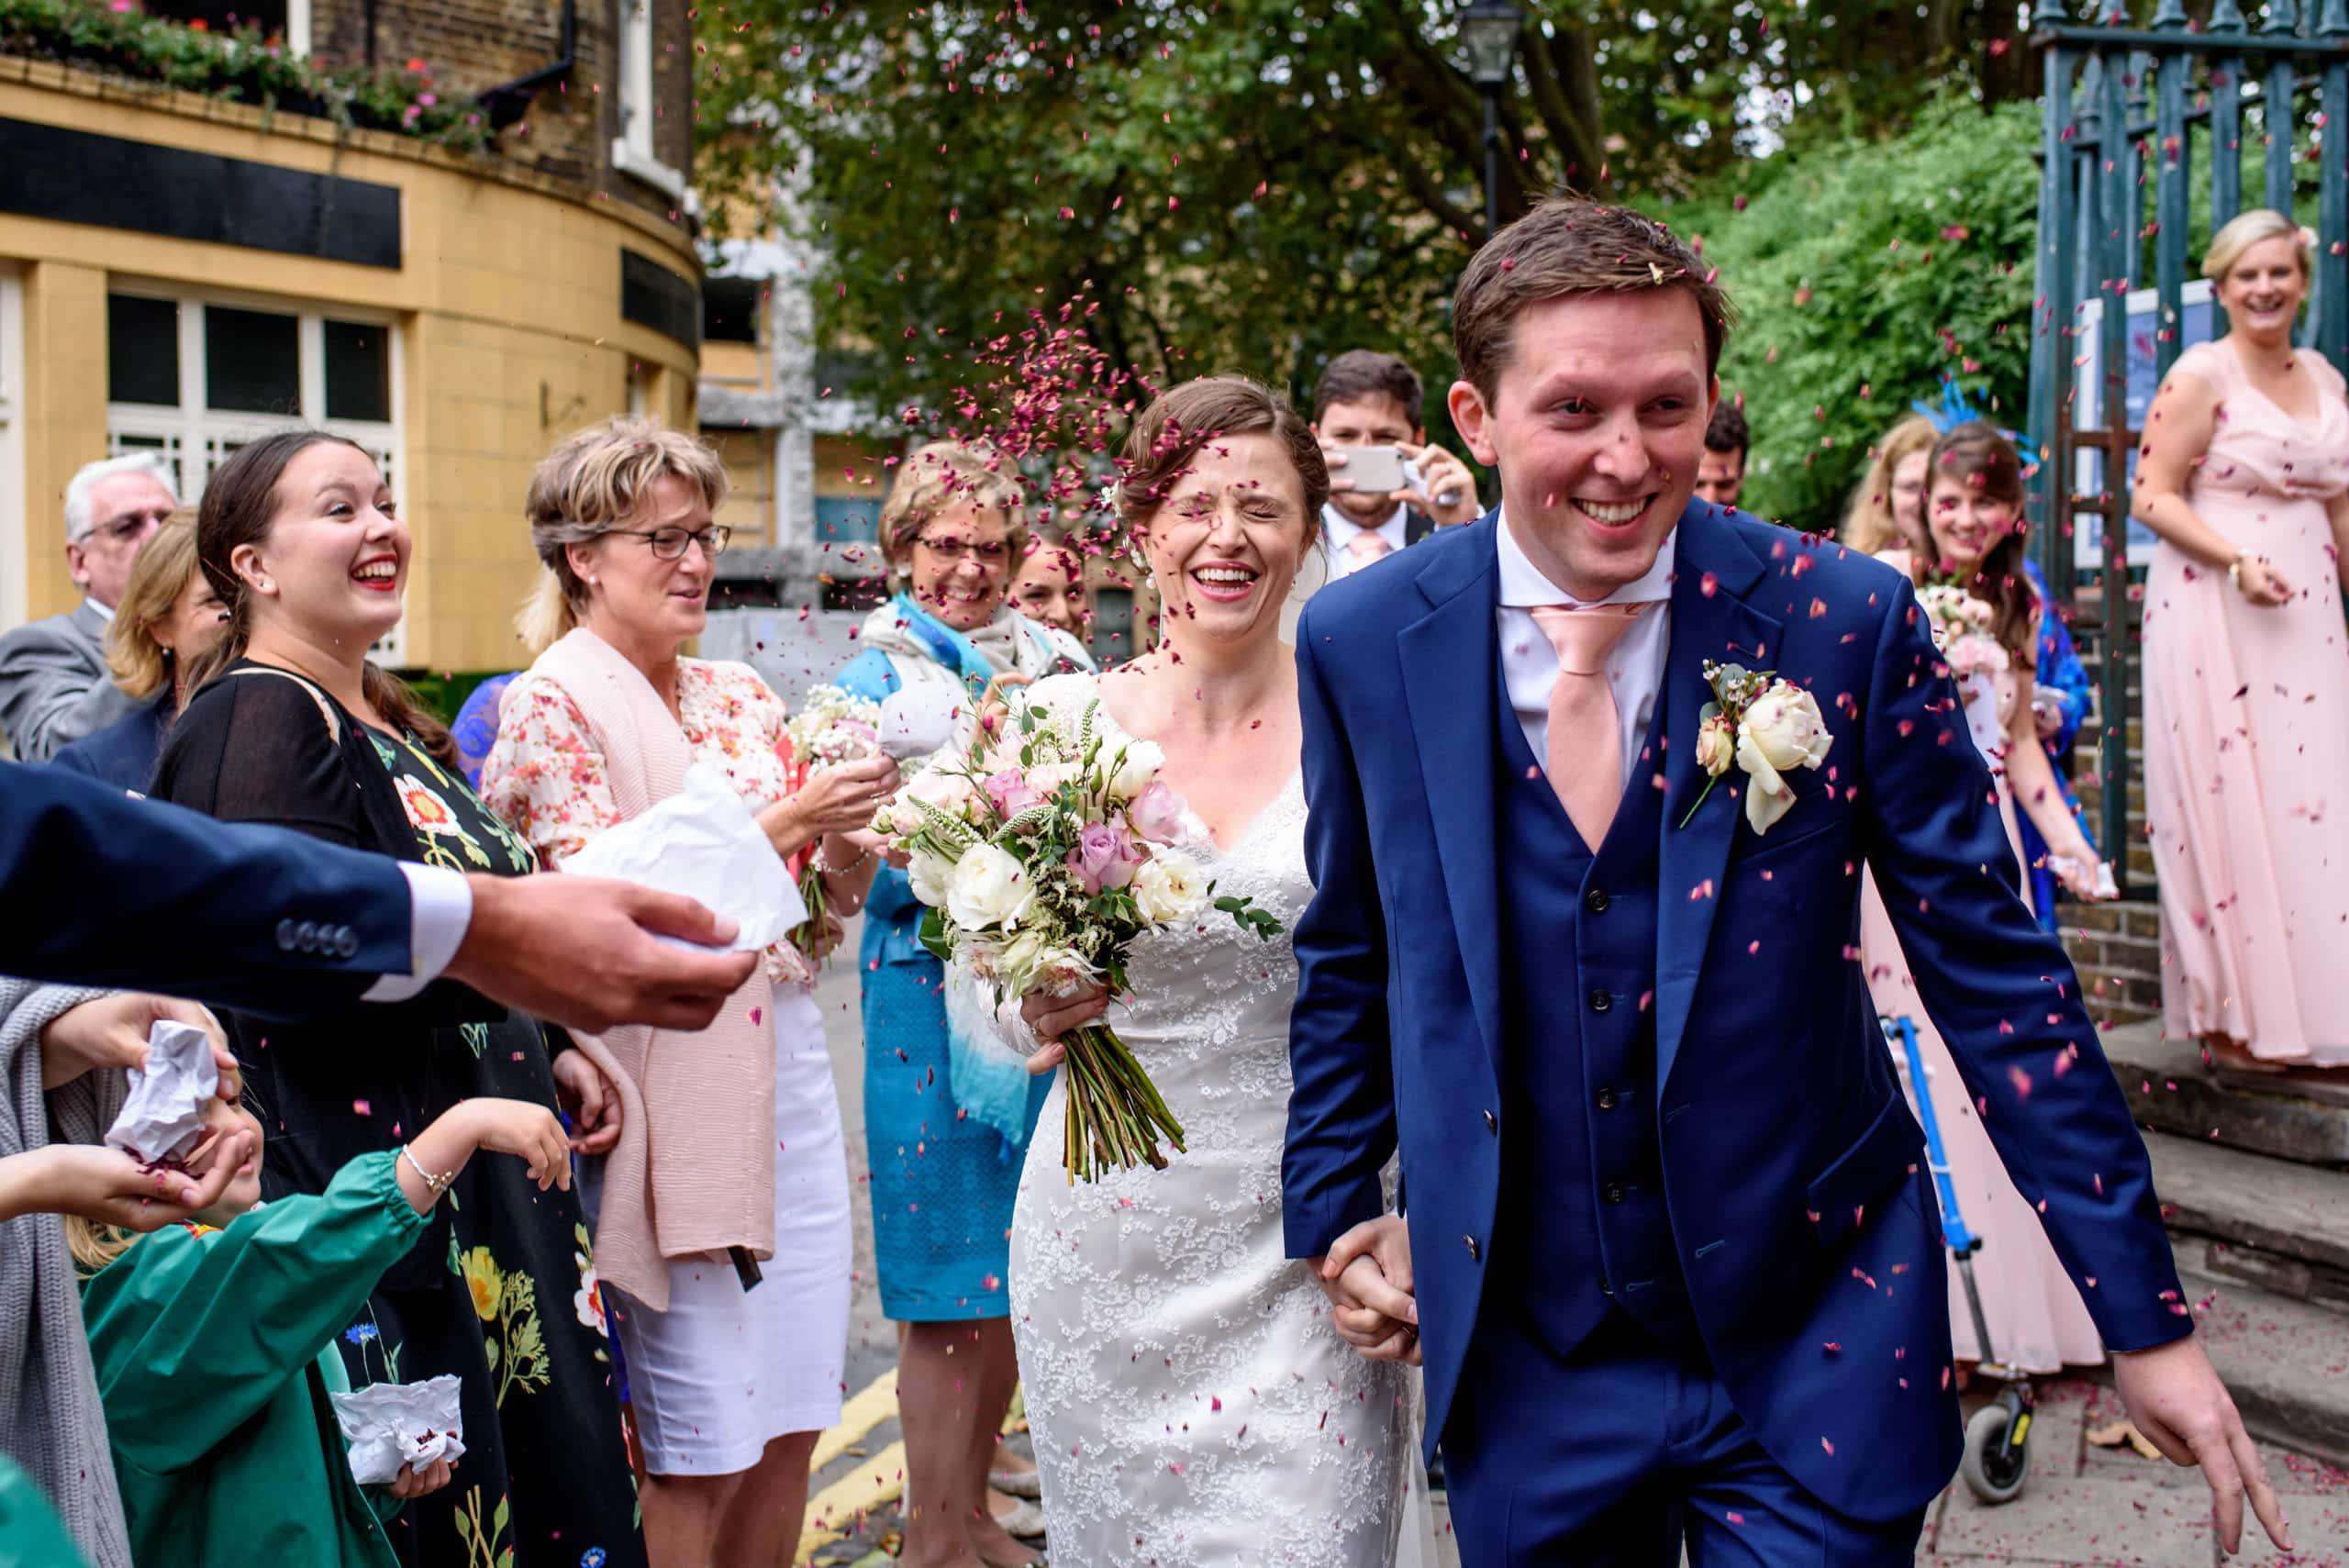 Bride and groom wedding confetti in North London